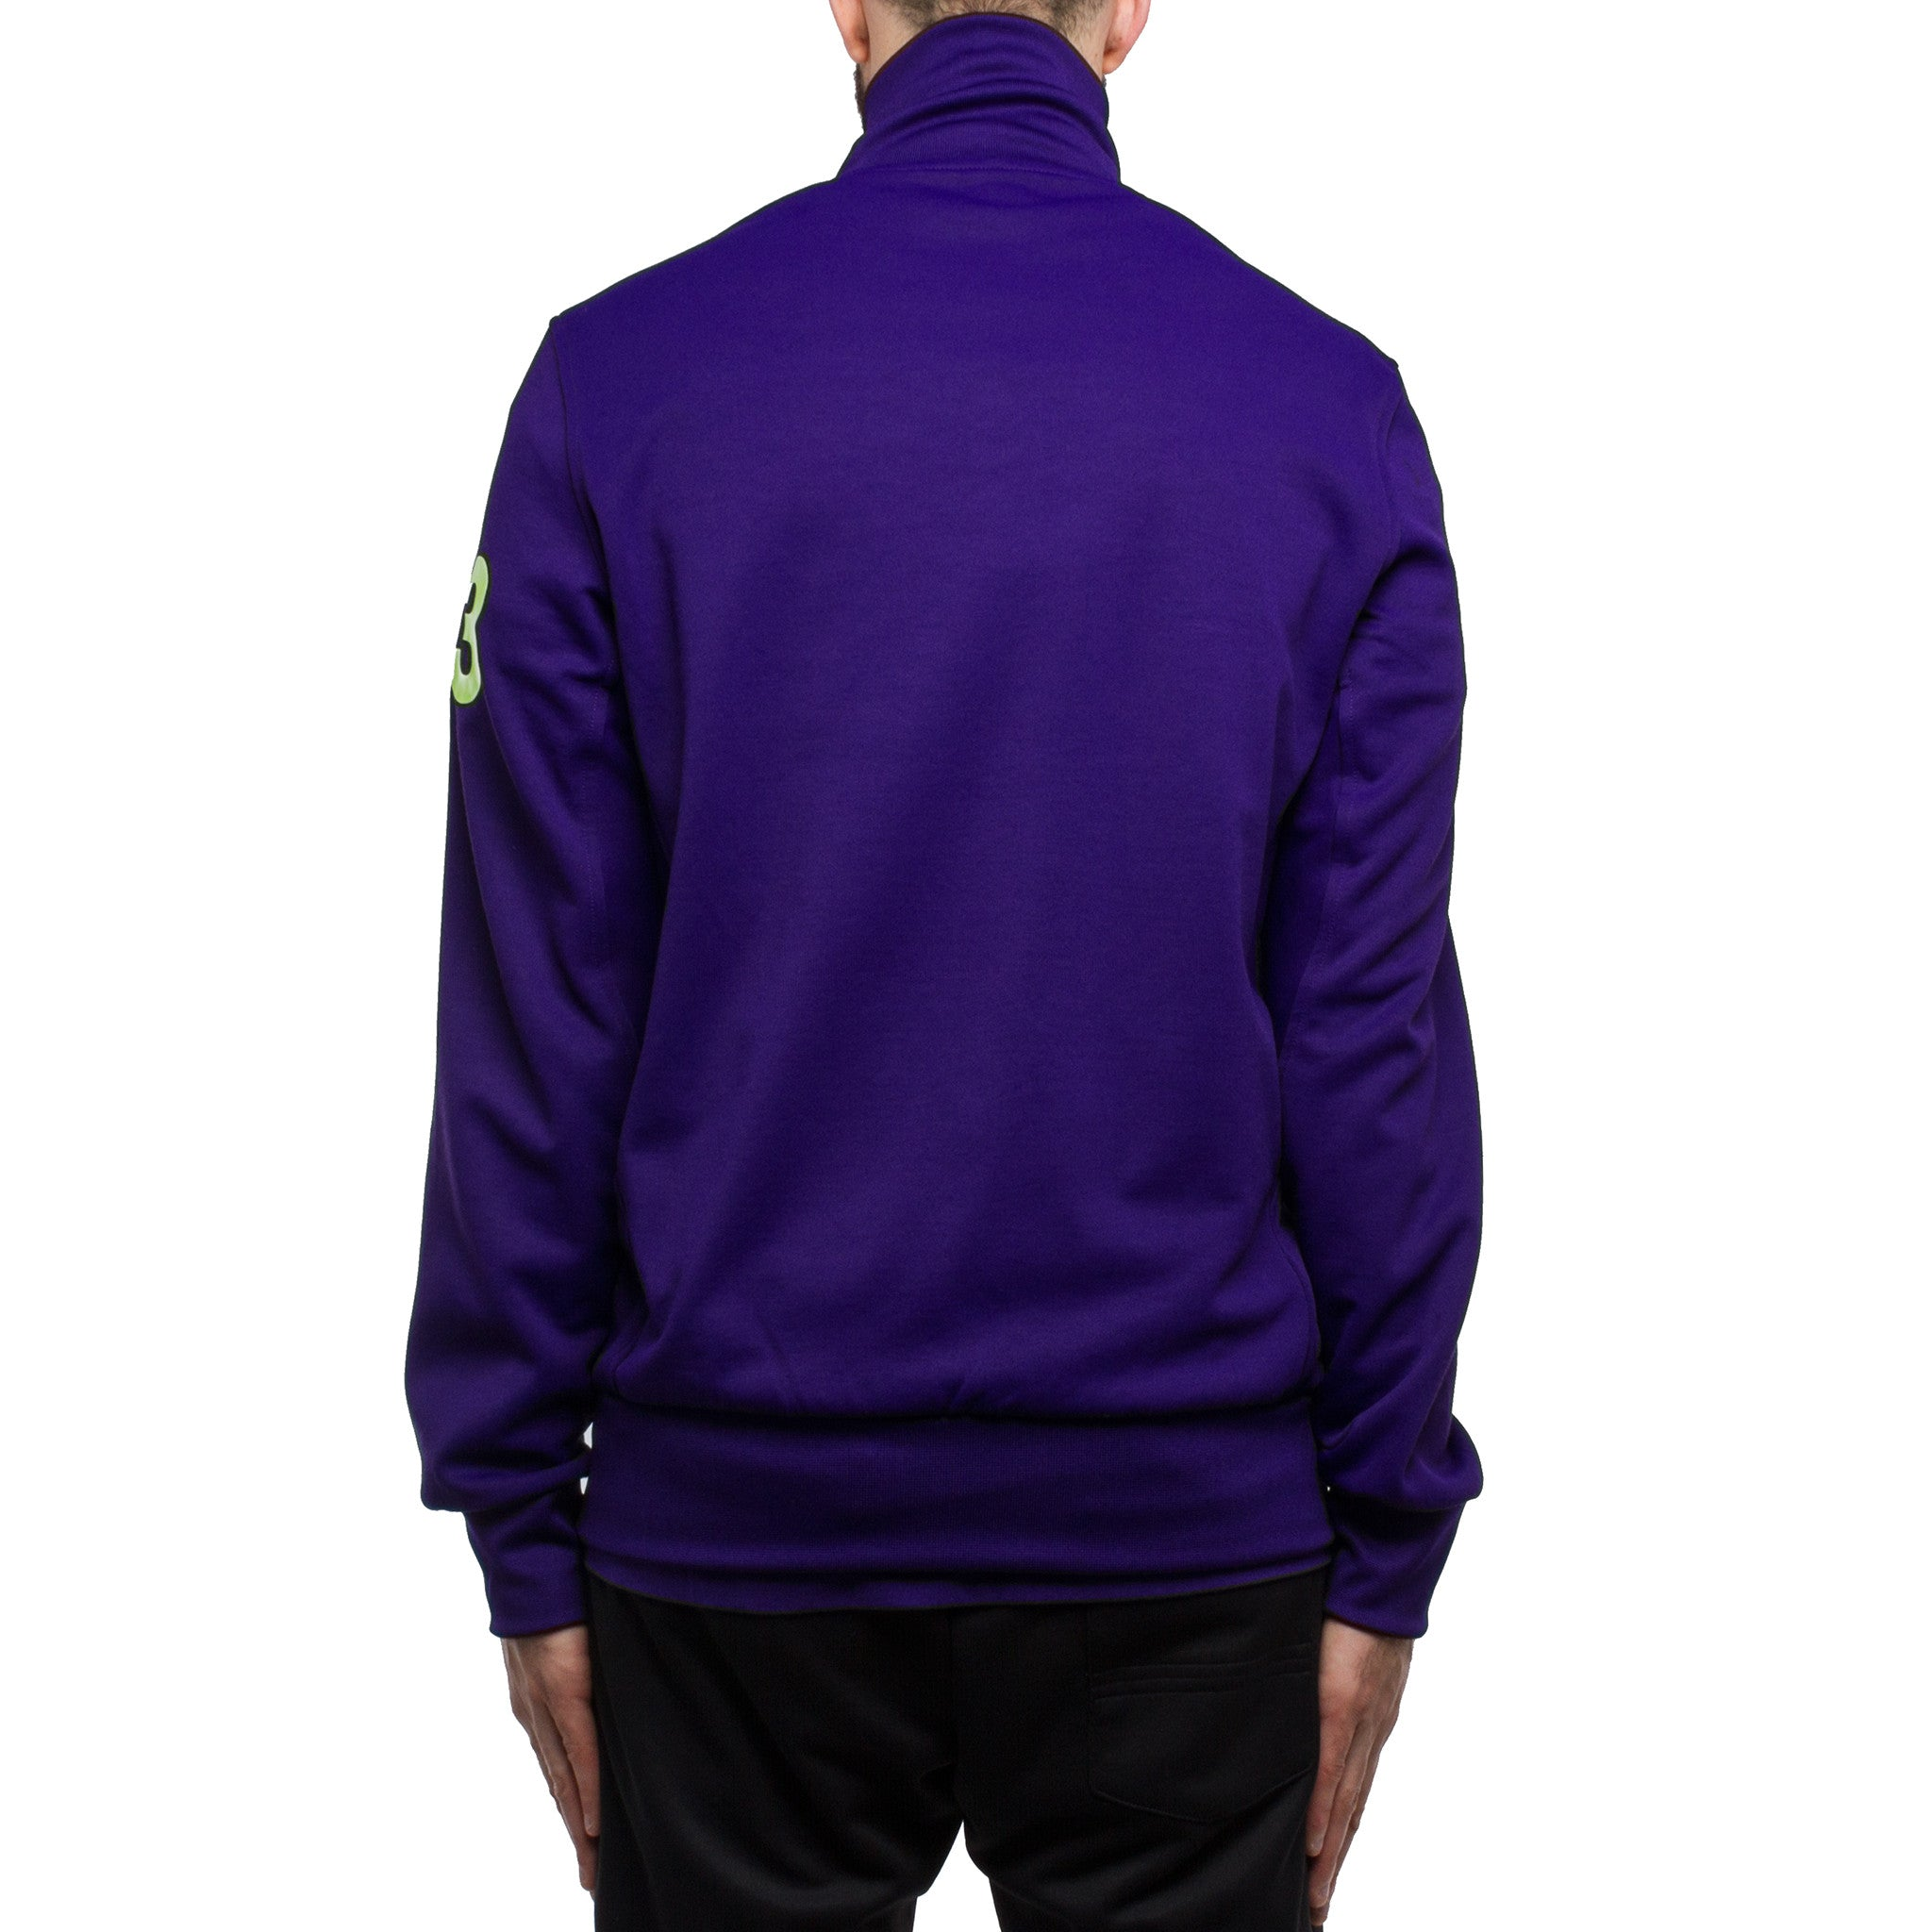 M CL TRACK TOP